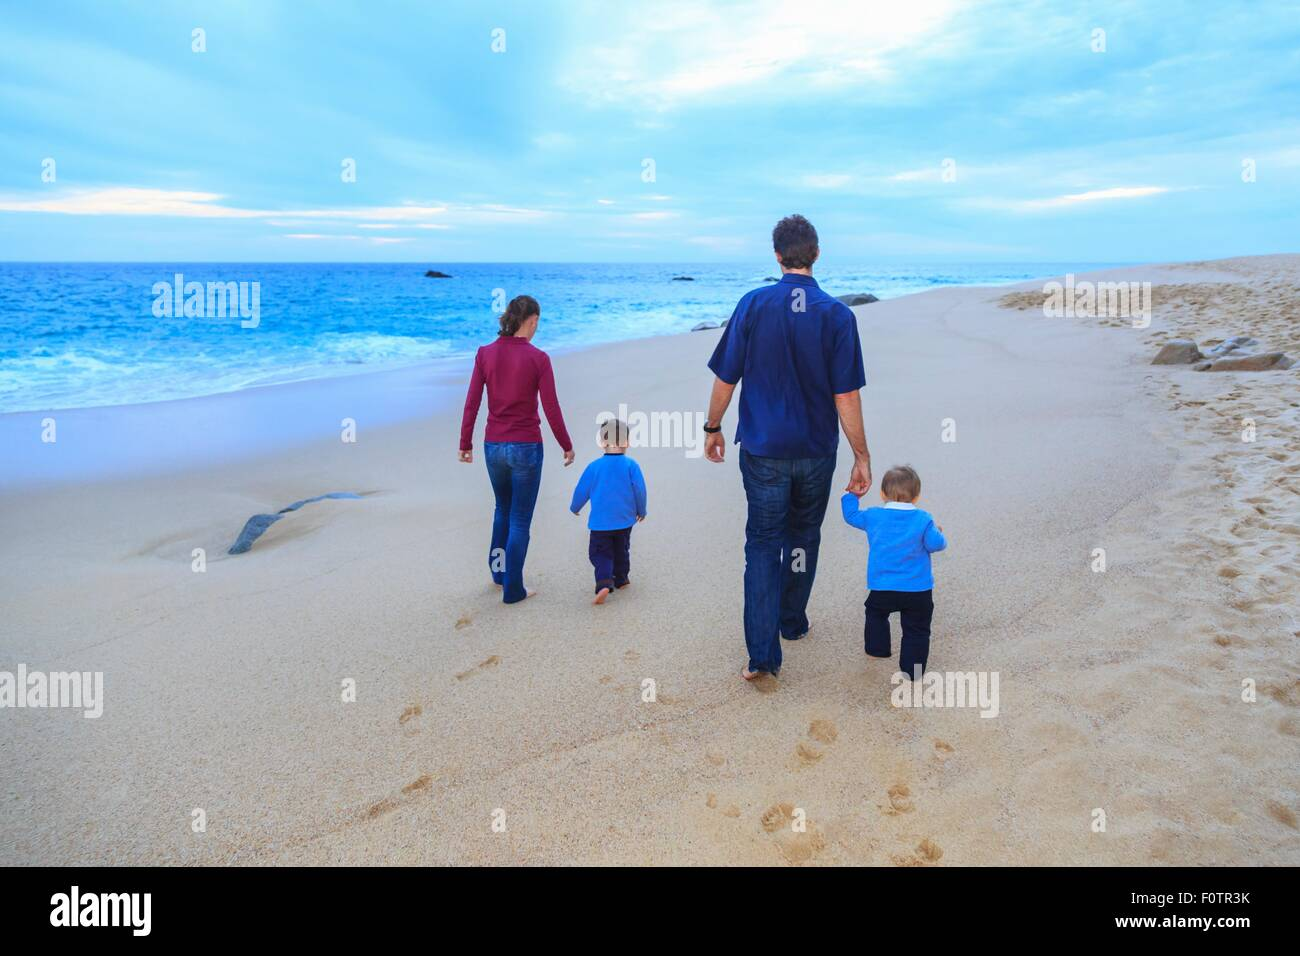 Young family walking on beach, rear view Stock Photo